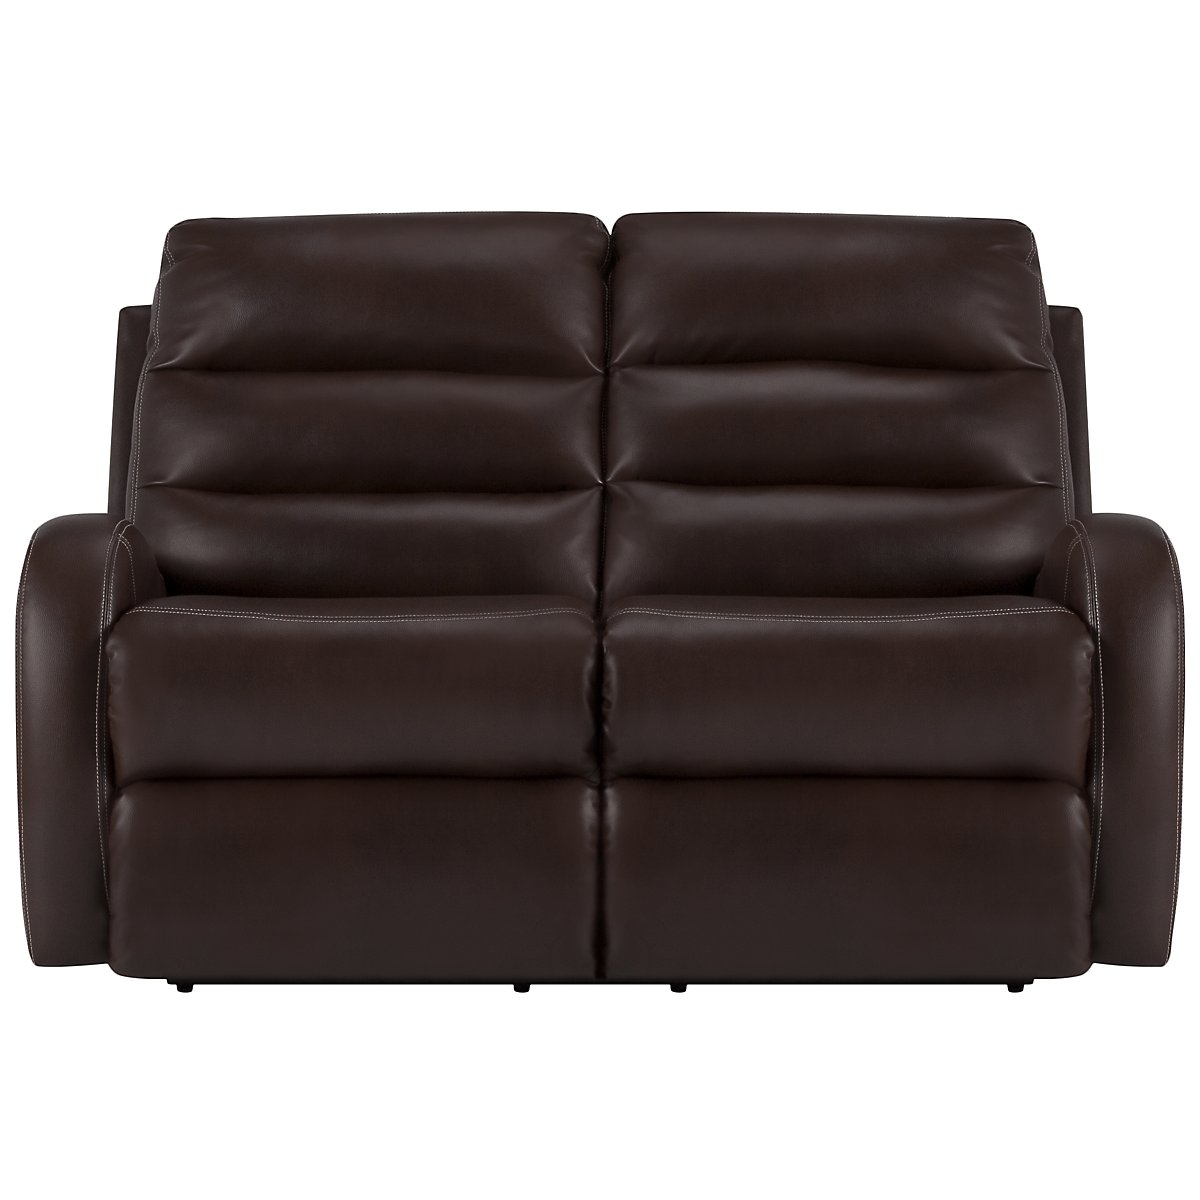 Carver Dark Brown Microfiber Power Reclining Loveseat